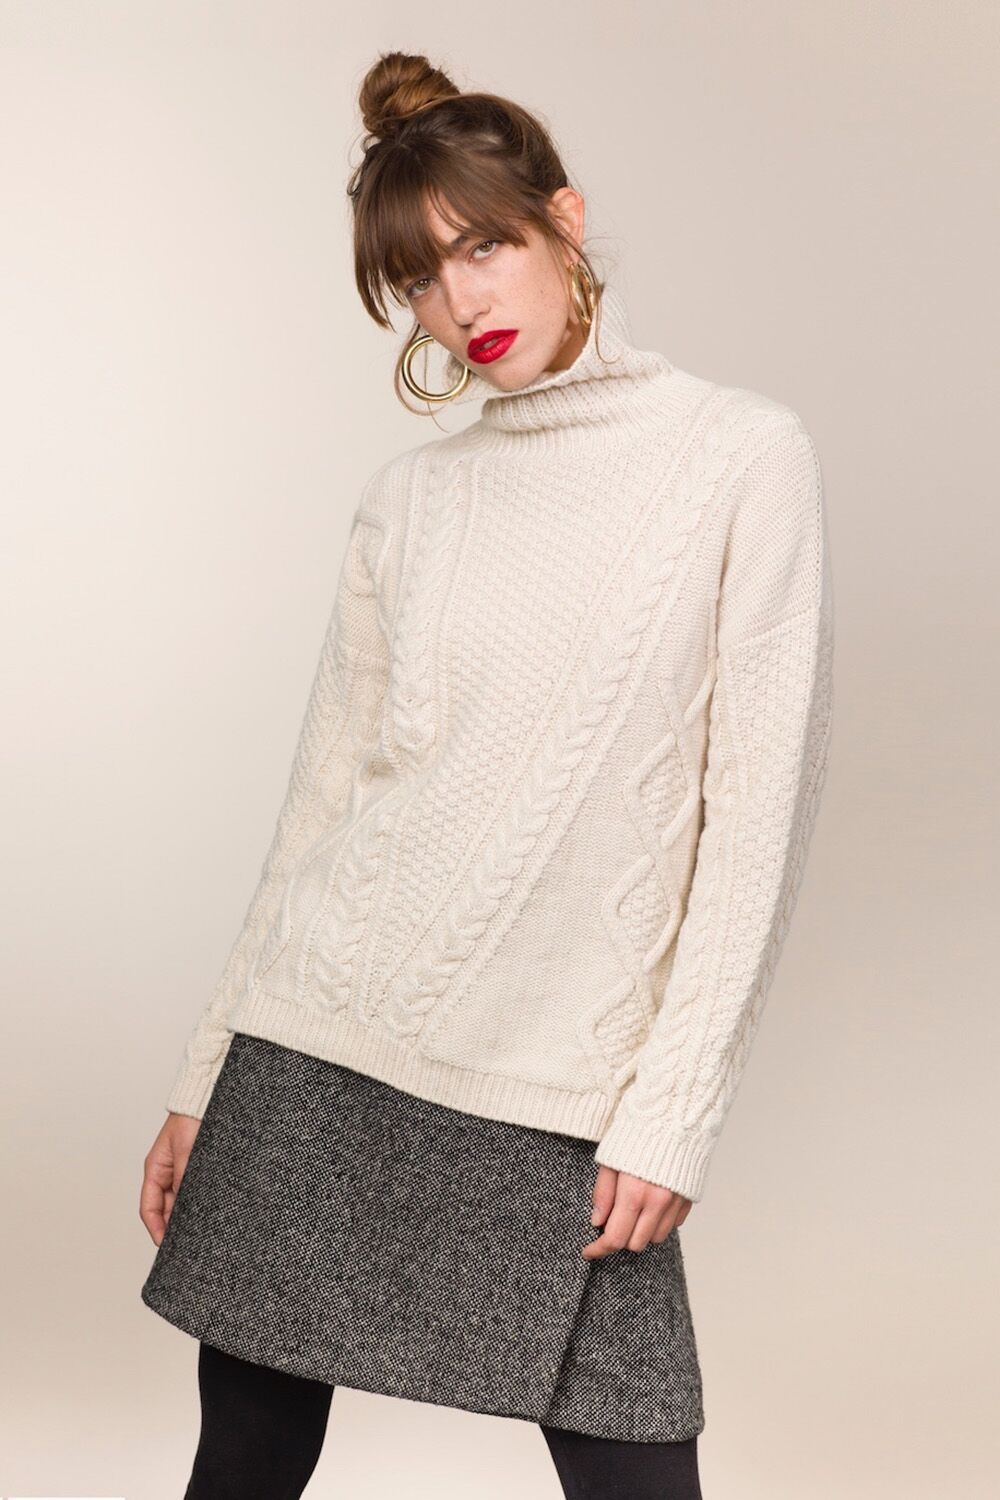 Aran Cabled Mock Neck Sweater Designs Of Ireland